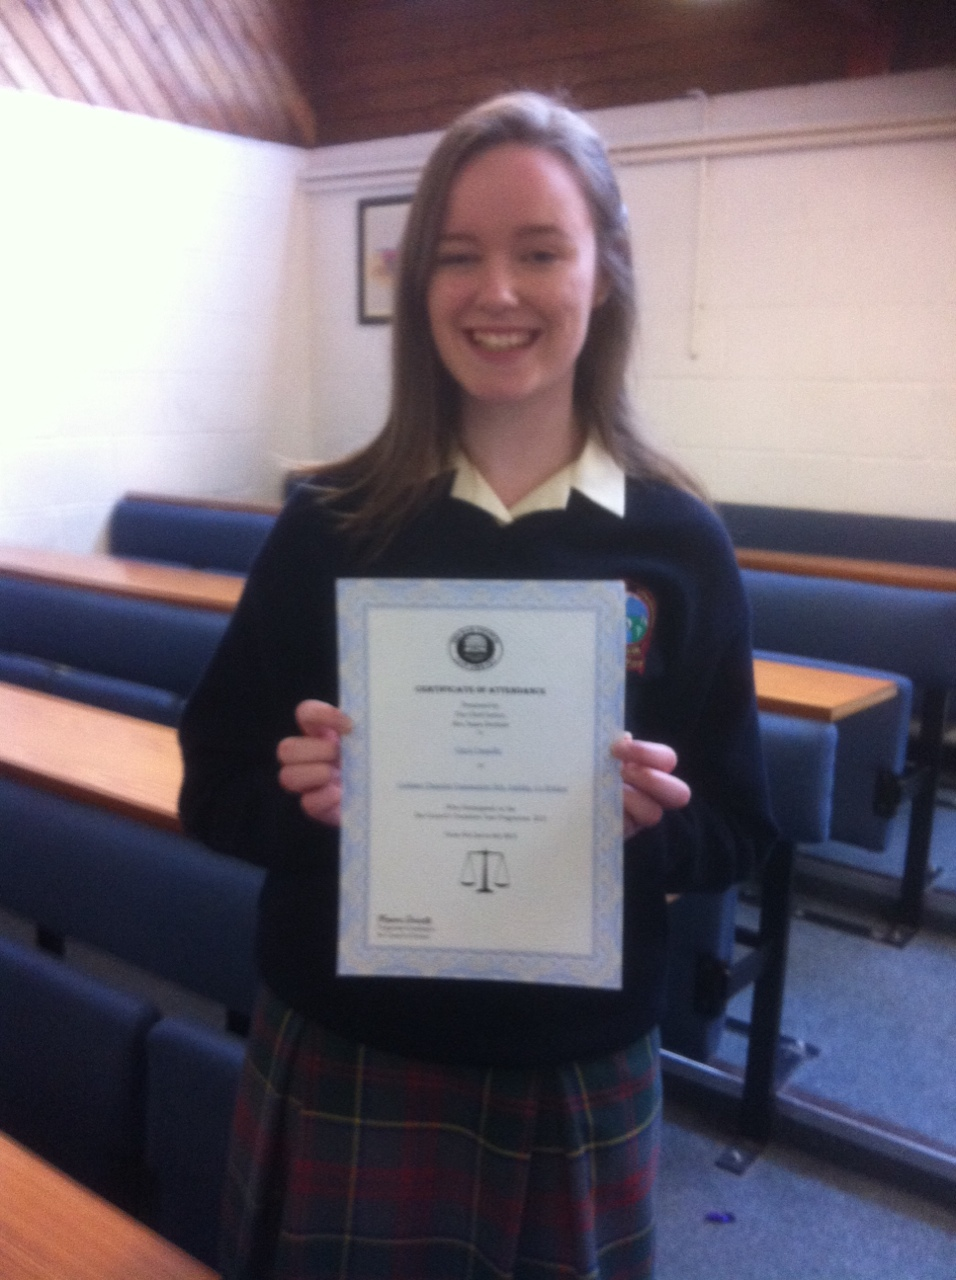 Ciara Cronnolly participated in a week long programme run by the Bar Council. She is pictured holding her certificate signed by Chief Justice Susan Denham.